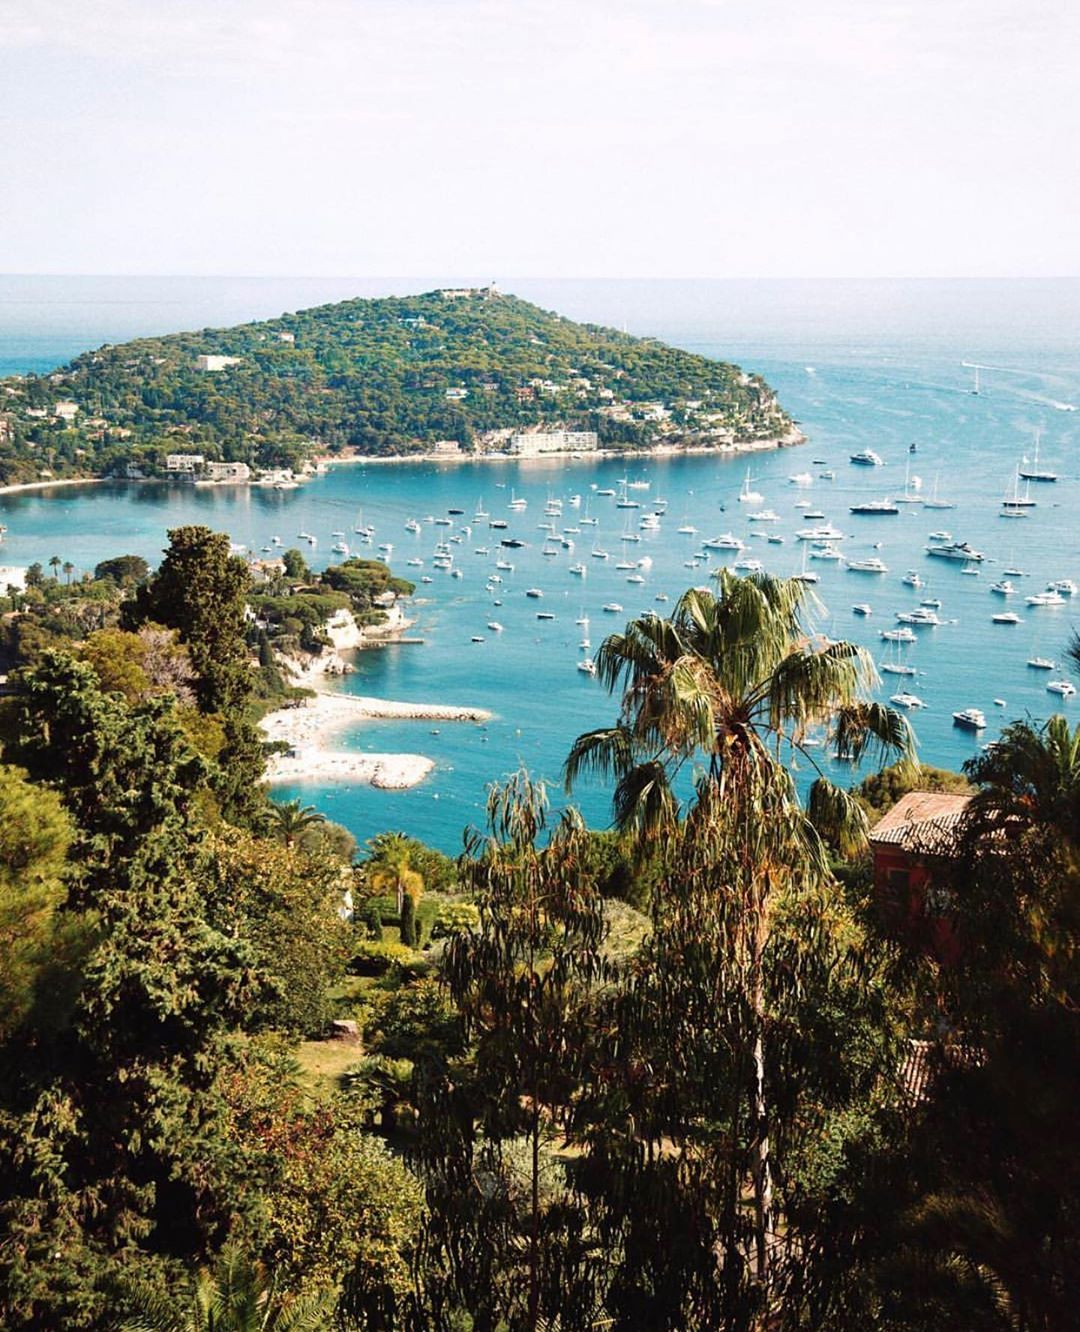 St Jean Cap Ferrat Depuis Villefranche Sur Mer By Irenedalmases In 2020 French Riviera Cancun Mexico Hotels Hawaii Beaches